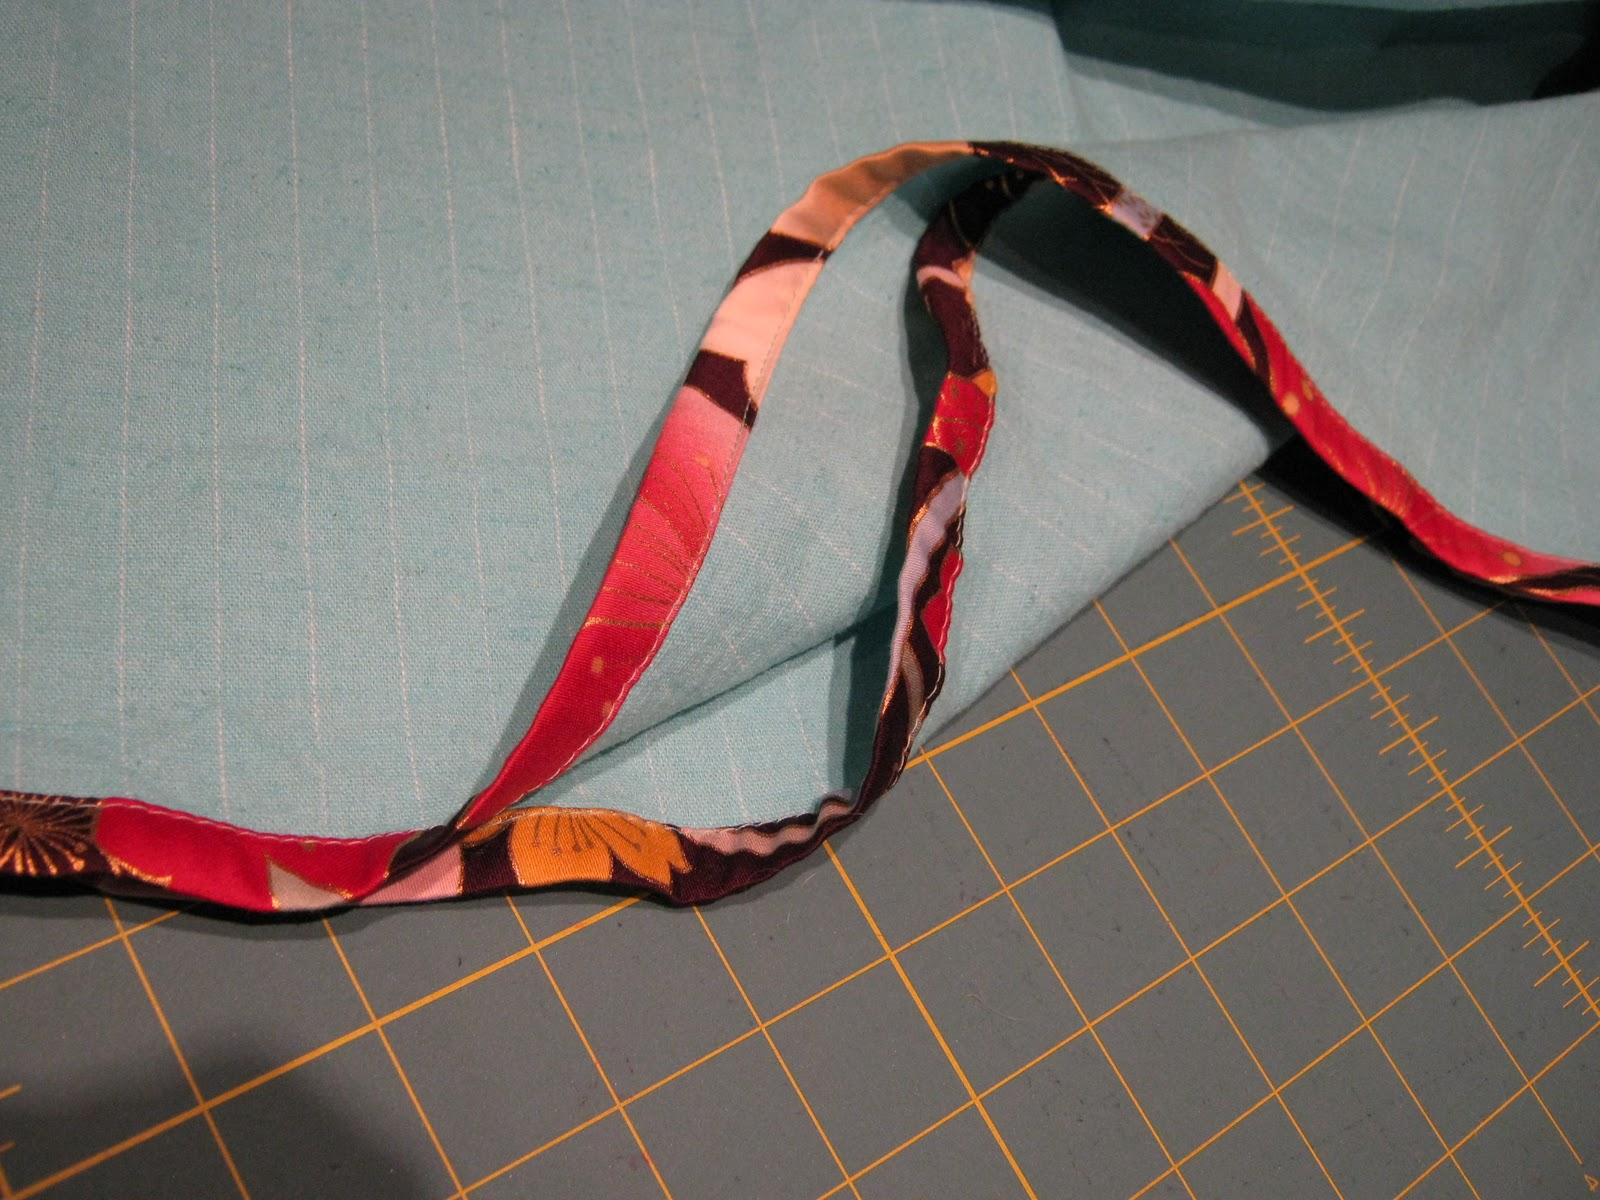 The Versatility Of Binding What Can You Do With It